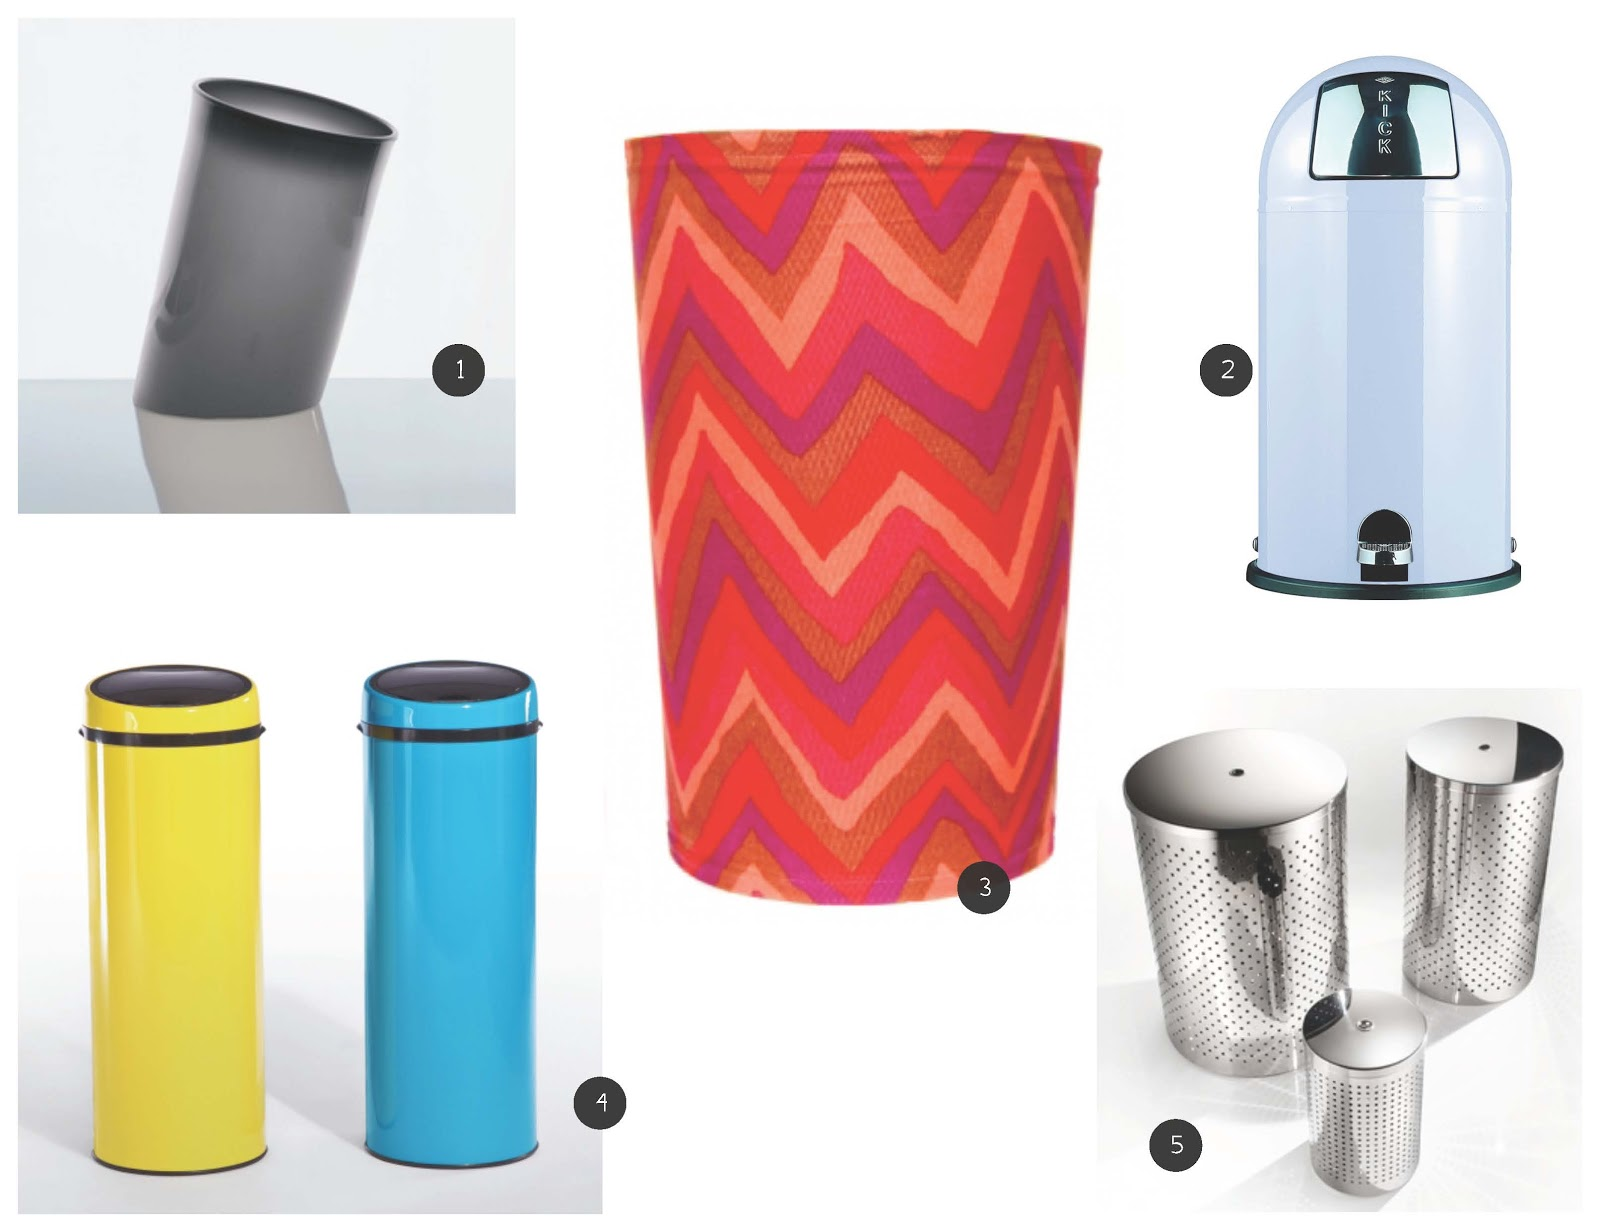 Crazy good design 10 cool trash cans - Cool wastebaskets ...